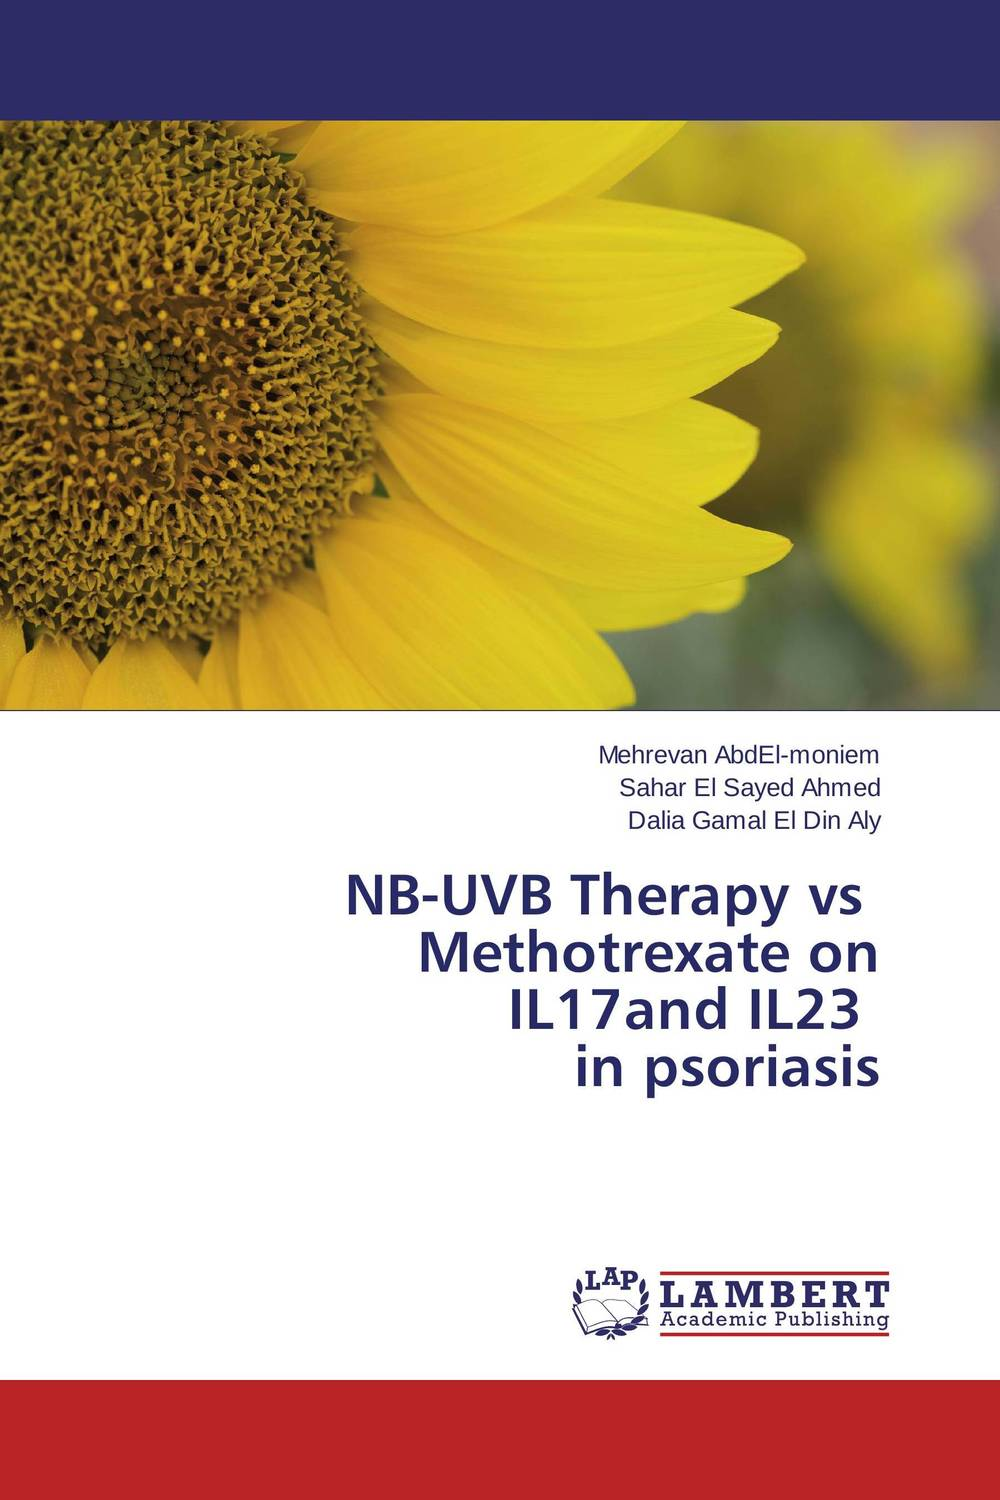 NB-UVB Therapy vs Methotrexate on IL17and IL23 in psoriasis